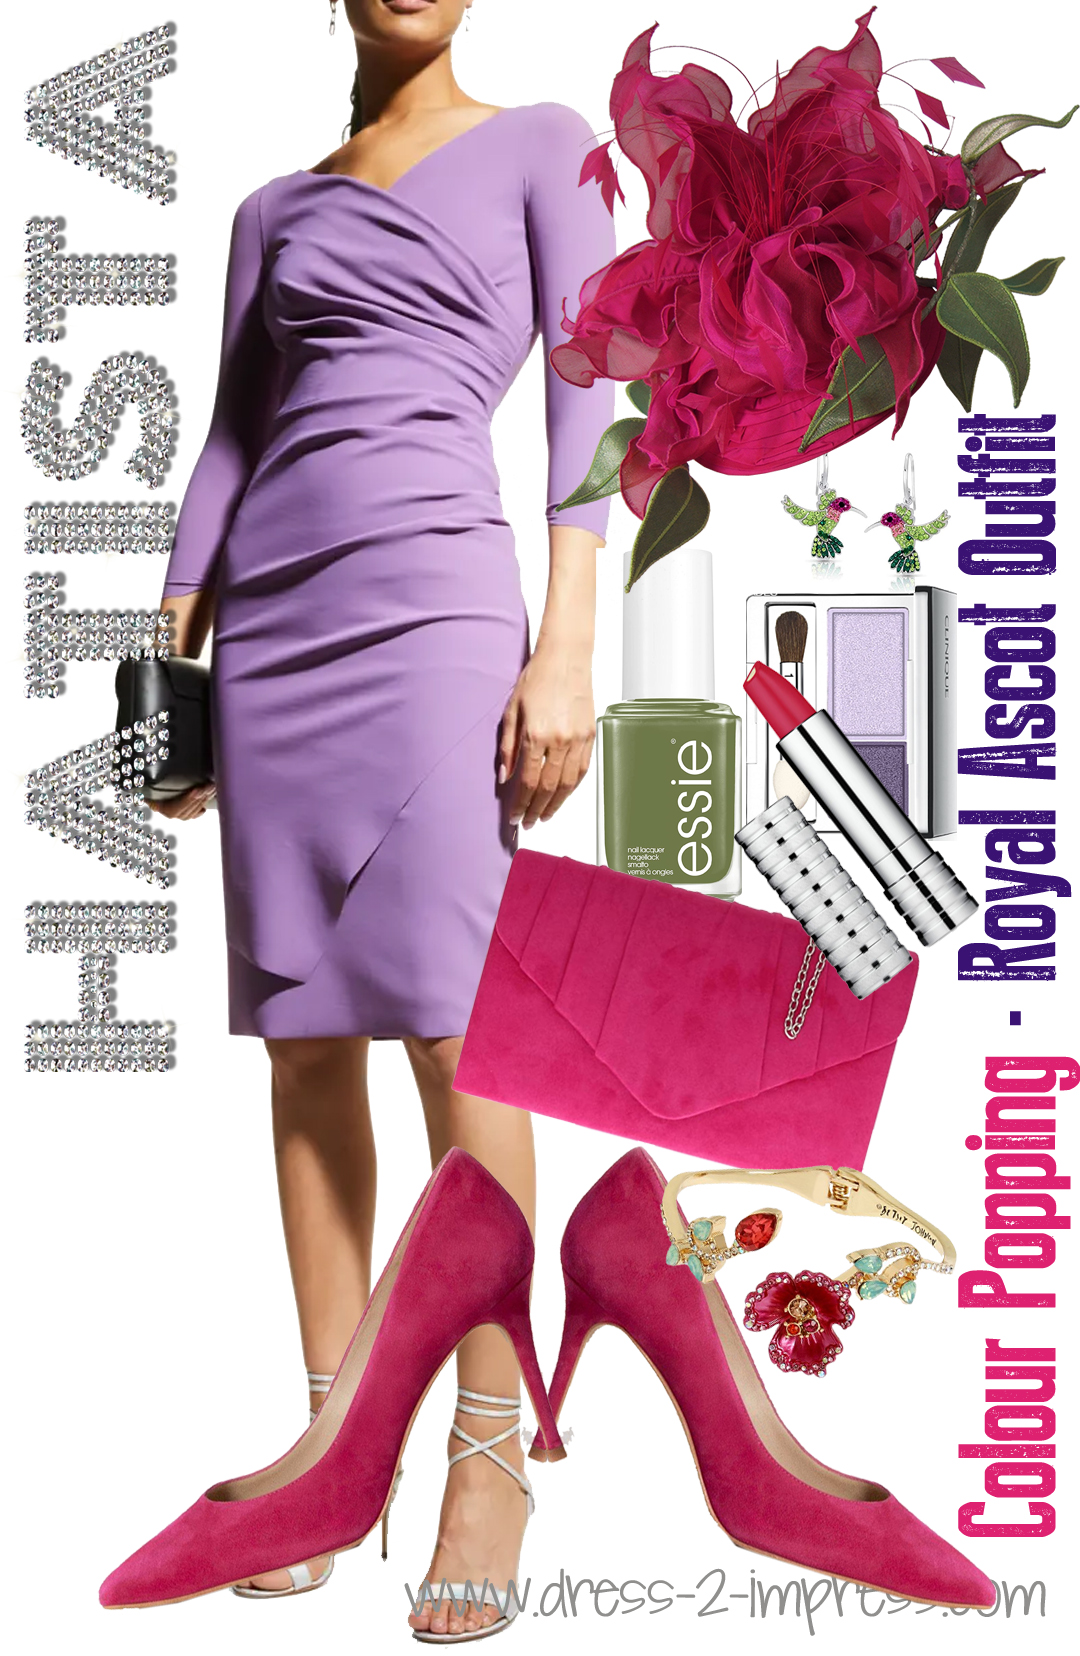 What to wear for Royal Ascot. Hot Pink and Lilac Outfit Combination. What to wear with a Lilac Dress. Outfits for Royal Ascot. What to wear to Ascot Races. How to wear pastels. What colours go with Olive Green. Royal Ascot Outfit Inspiration #royalascot #fashion